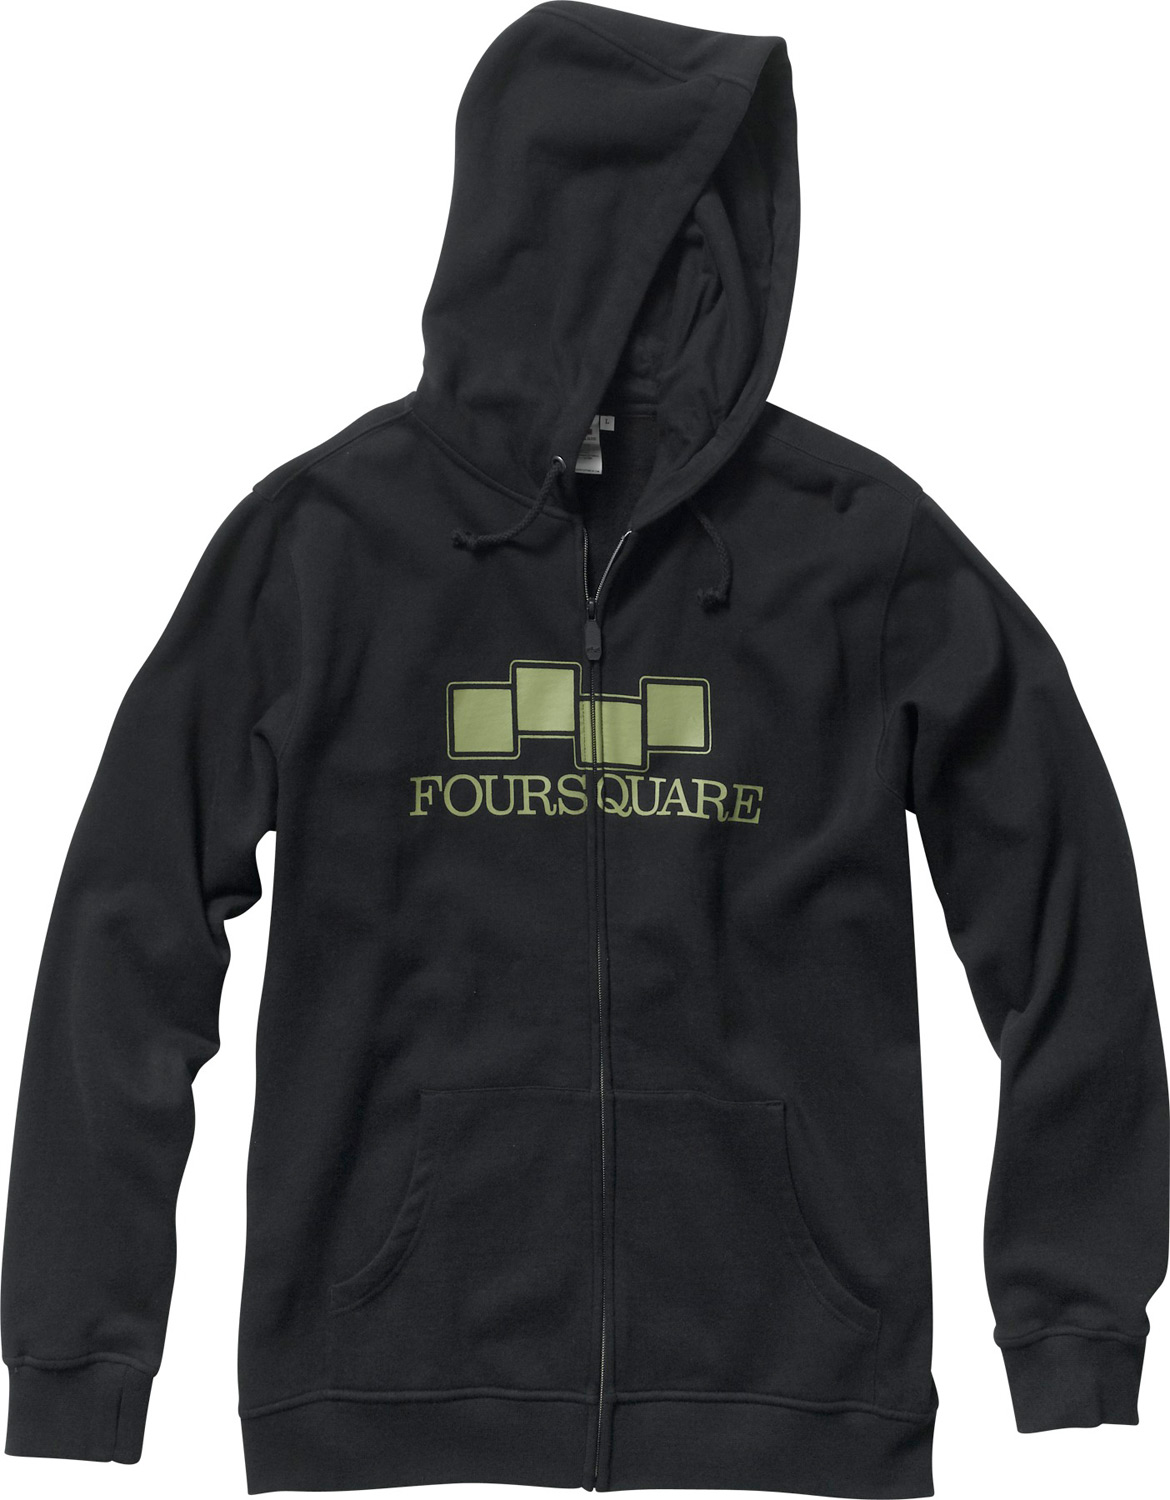 Snowboard This is your chance to own your very own Foursquare Couloir Hoodie before they are out of stock permanently. This ultra-comfortable 80%/20% Cotton/Polyester blend will be lightweight while keeping your warm during any activity you need it for. Keep this on for layering, school, or wearing around the house. The mid-weight insulation will keep your body protected from the elements even when they throw the worst at you. Pockets are great for keeping your hands warm while the pull over hood will keep your head out of the wind. Pick up the Foursquare Hoodie today before they are out of stock.Key Features of the Foursquare Couloir Hoodie:  80% Cotton 20% Polyester, 300 Gm  100% Cotton Jersey Hood Lining  Screen Printed Artwork  Regular Fit - $29.95